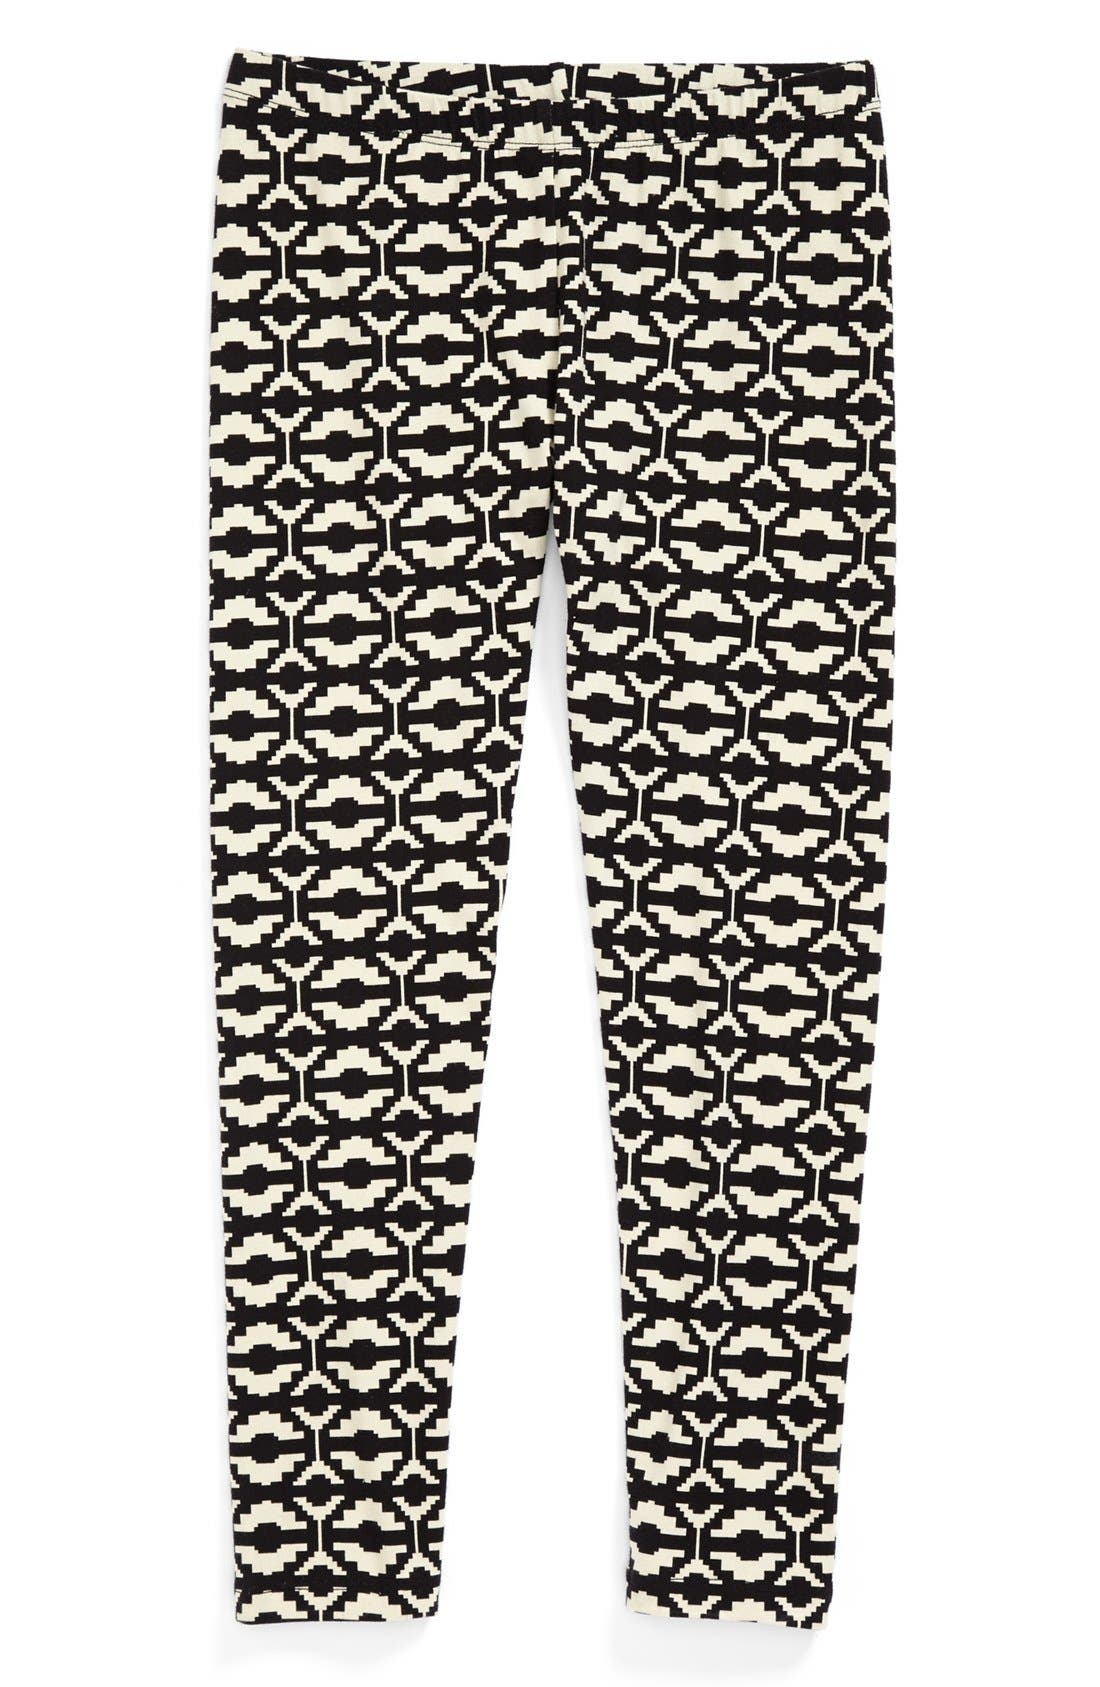 Alternate Image 1 Selected - Mia Chica Stretch Cotton Leggings (Big Girls)